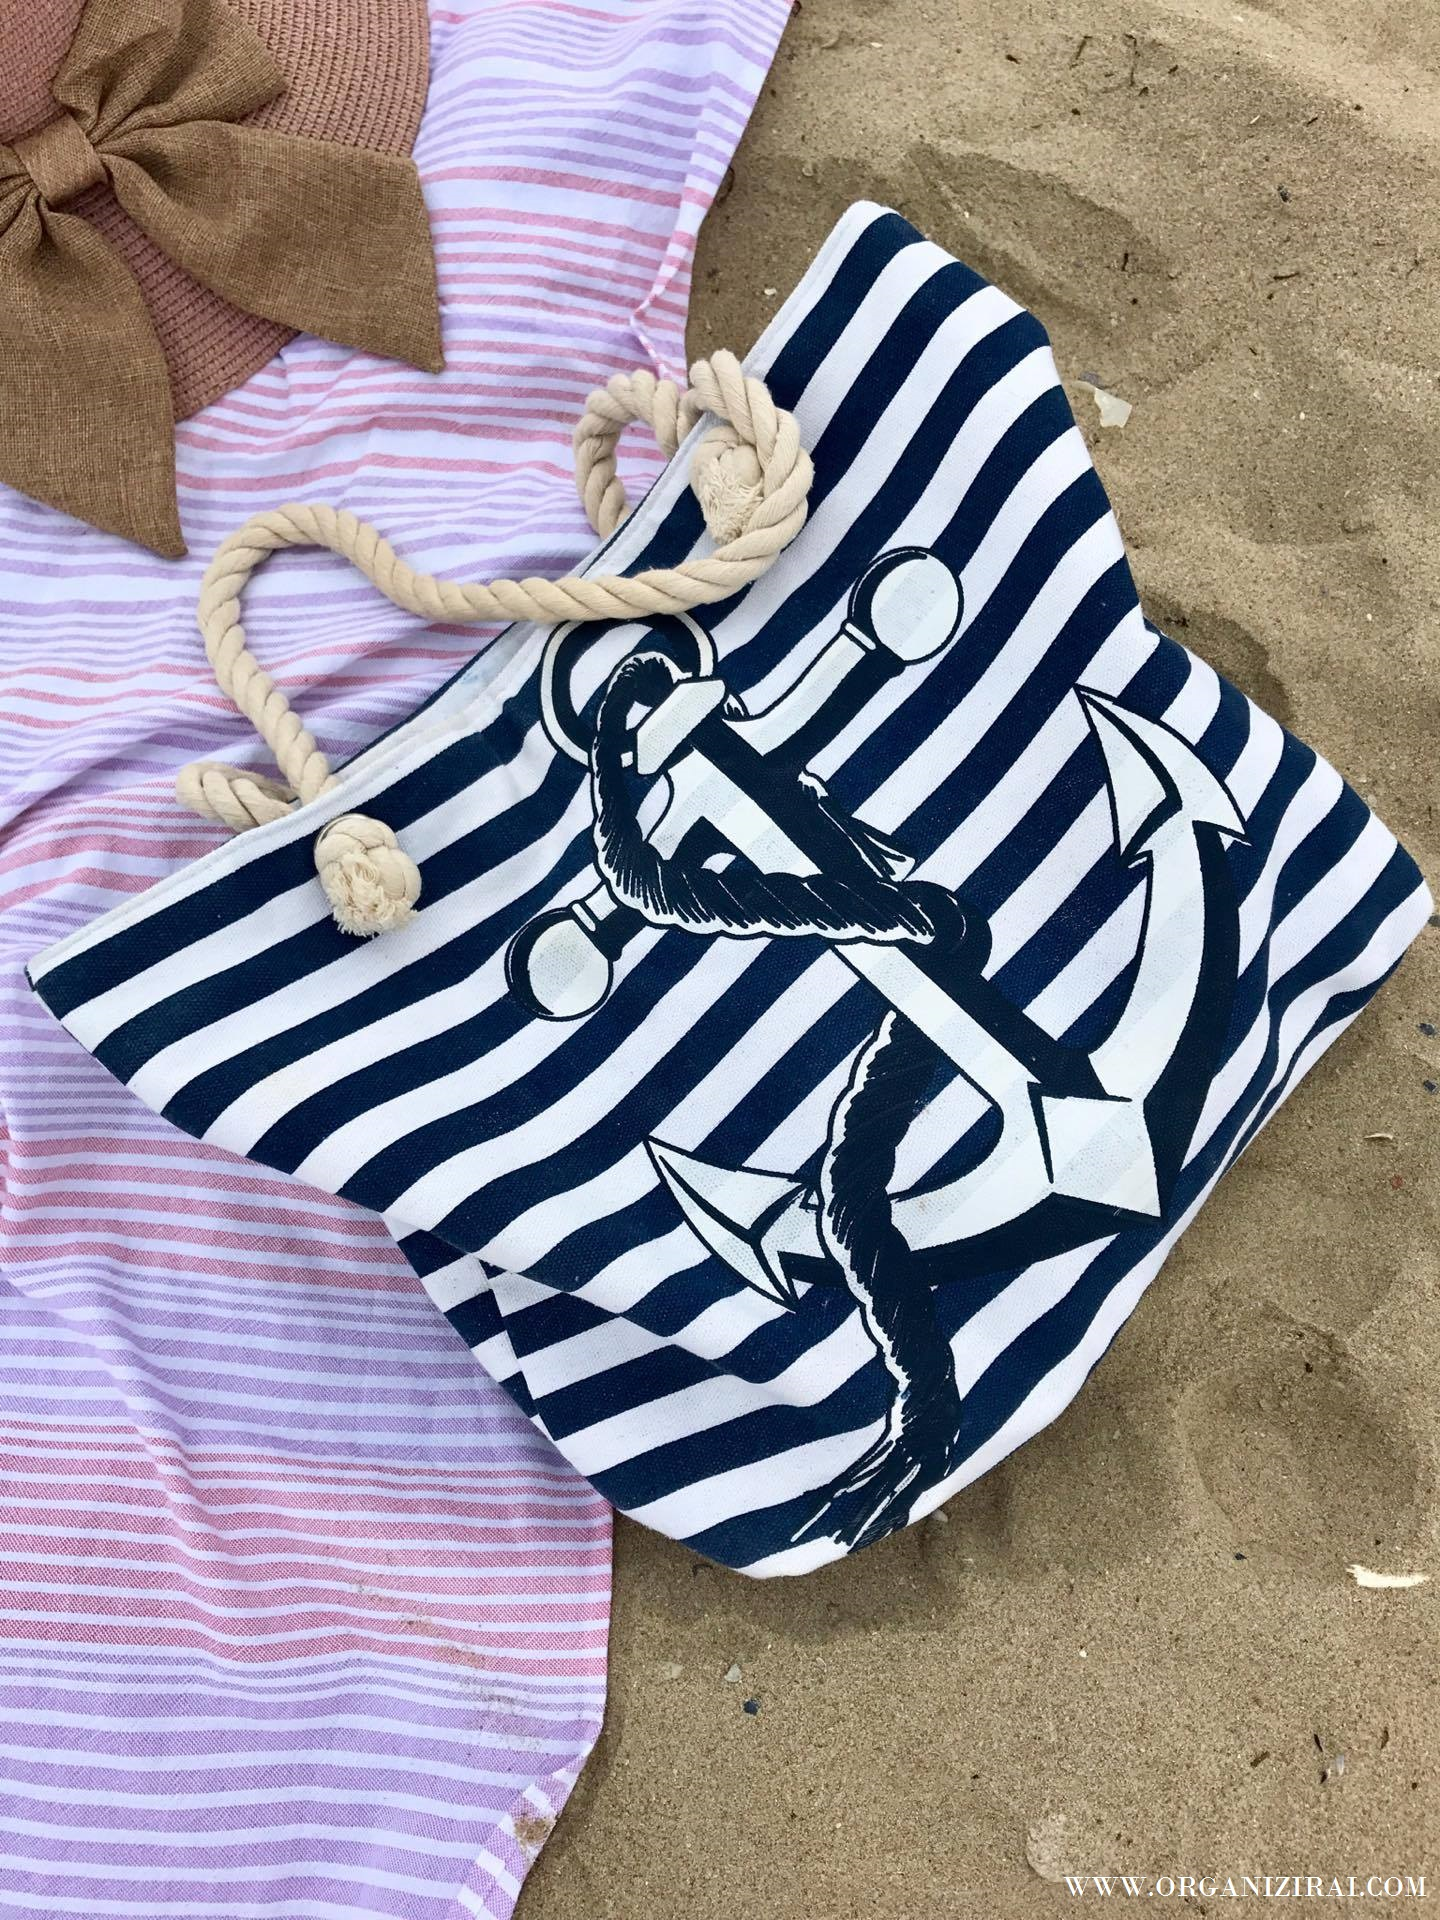 BEACH-BAG-ORGANIZIRAI.COM-BEST-BULGARIAN-BLOGGERS